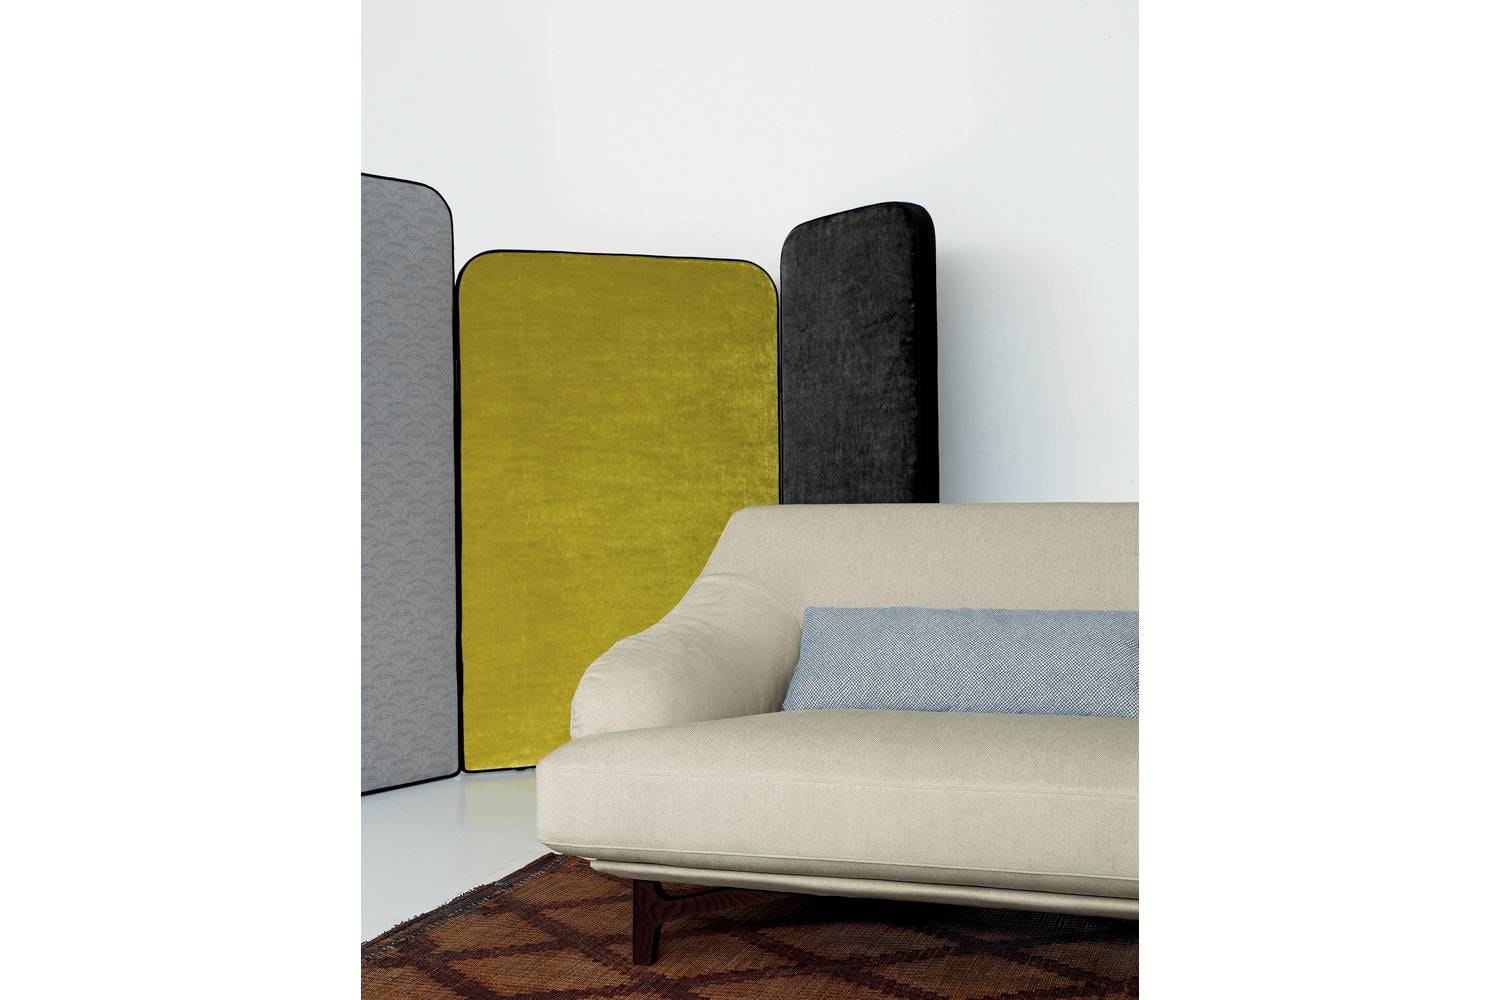 Candy Sofa by Carlo Colombo for Arflex